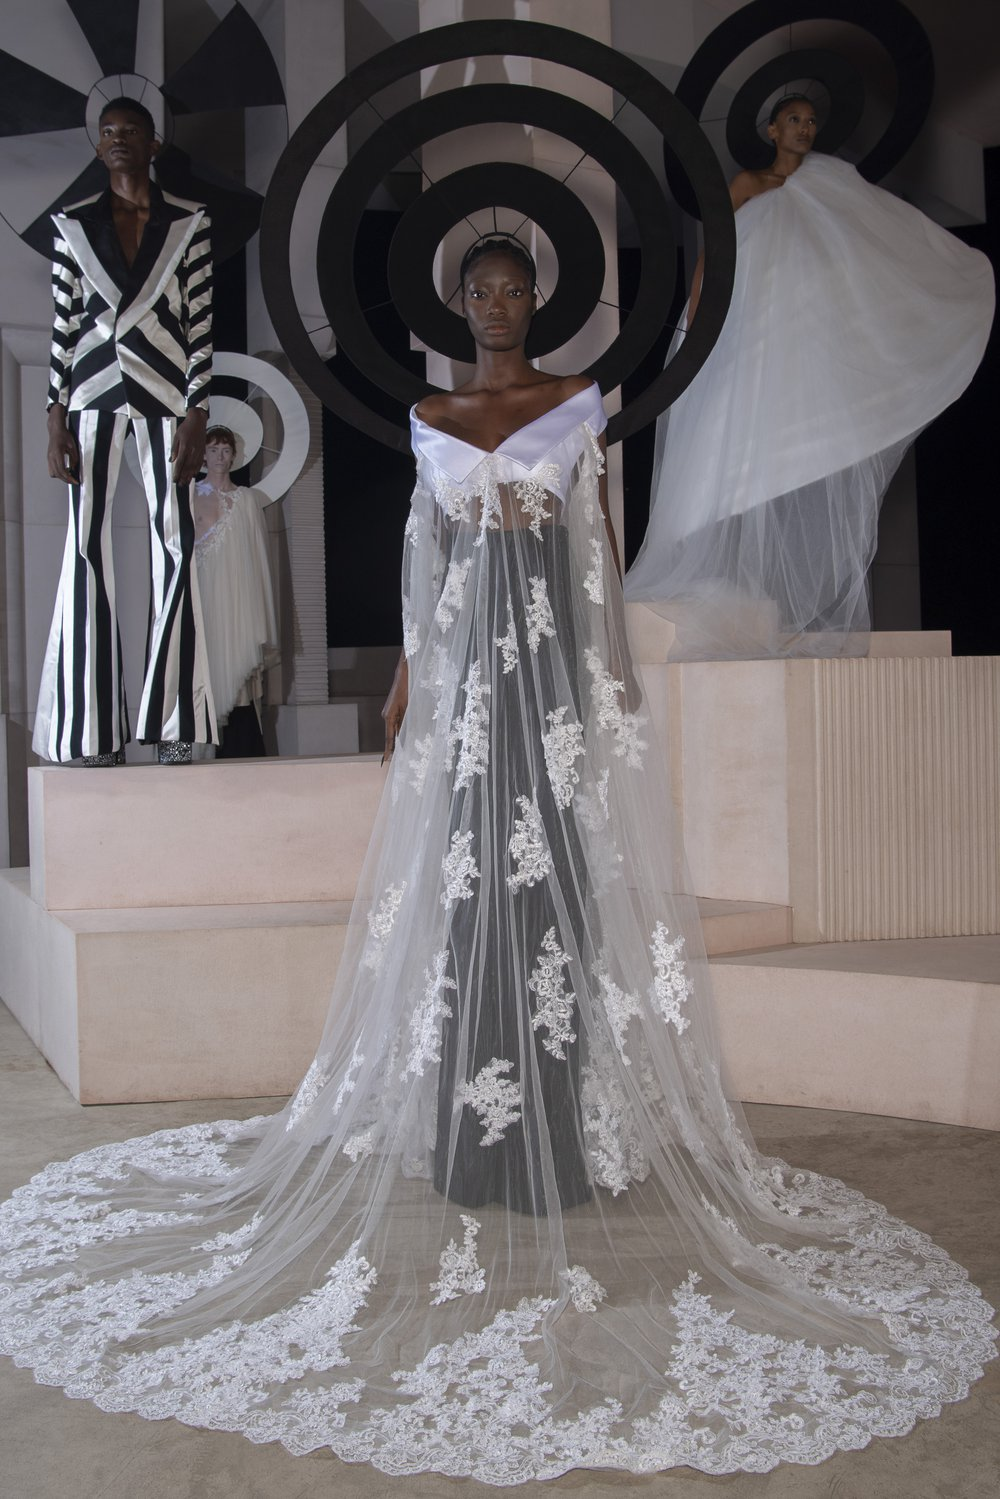 A model wears a demi-couture bridal gown made from Oxfam pre-loved bridal wear and flared suit trousers. Models stand in the background wearing other looks